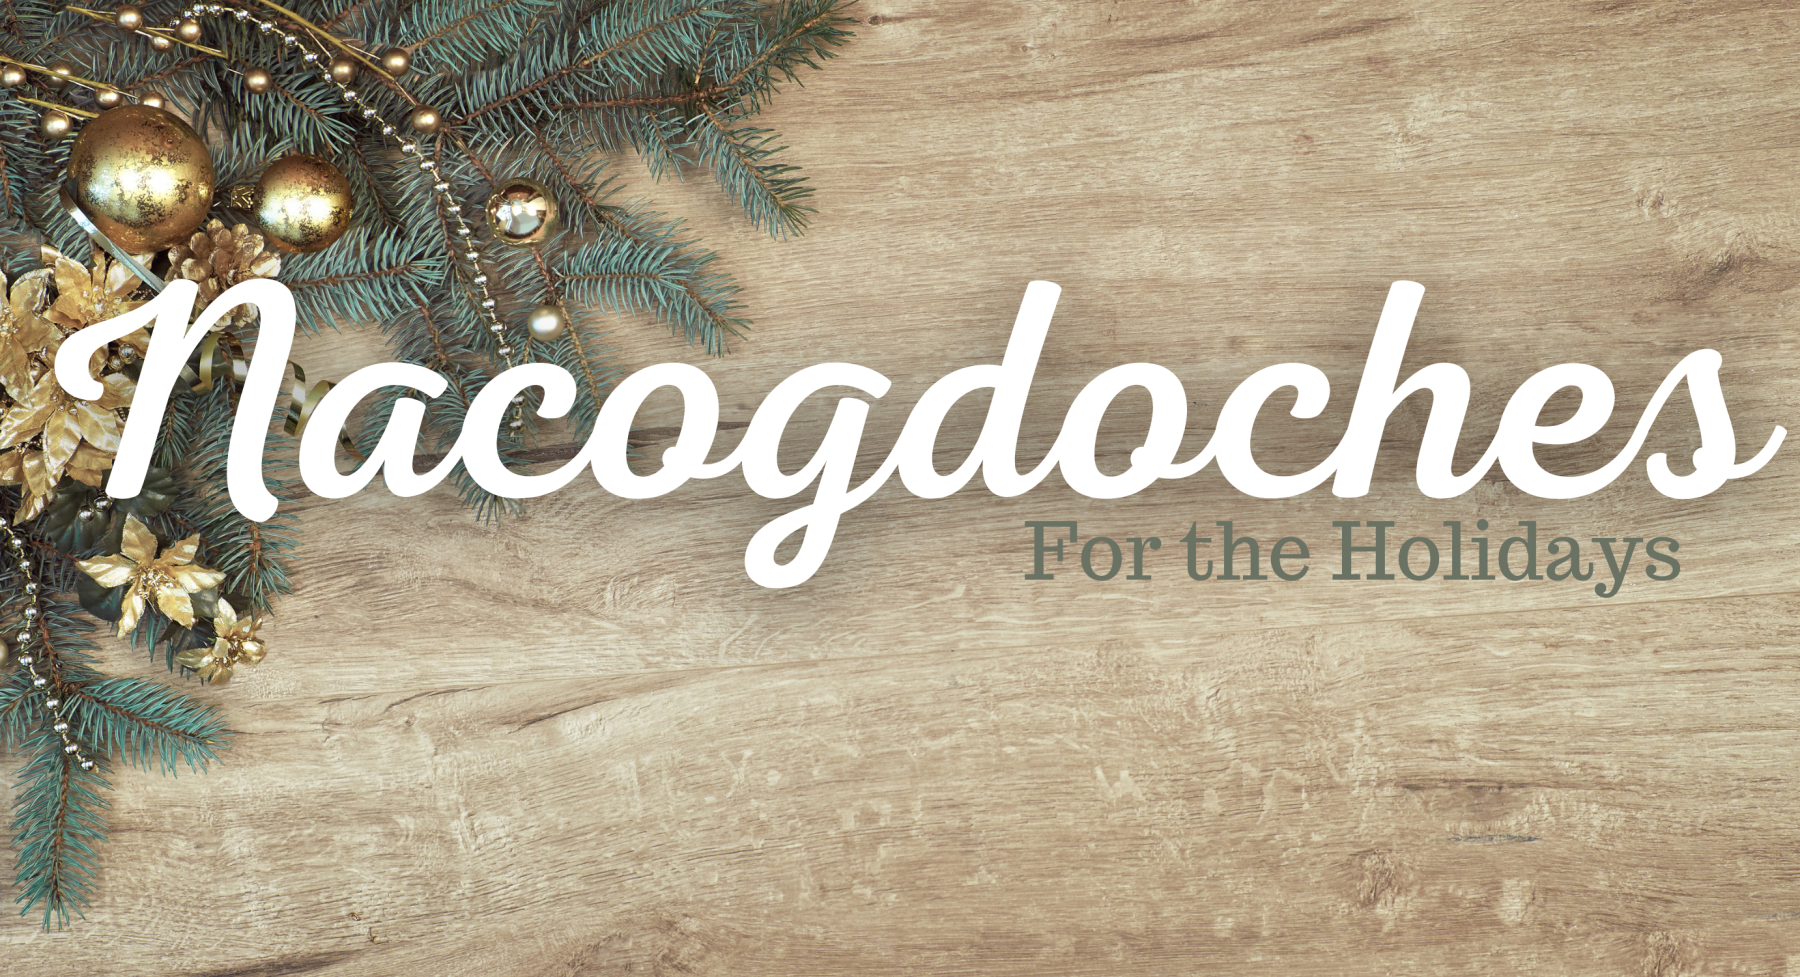 Nacogdoches for the Holidays